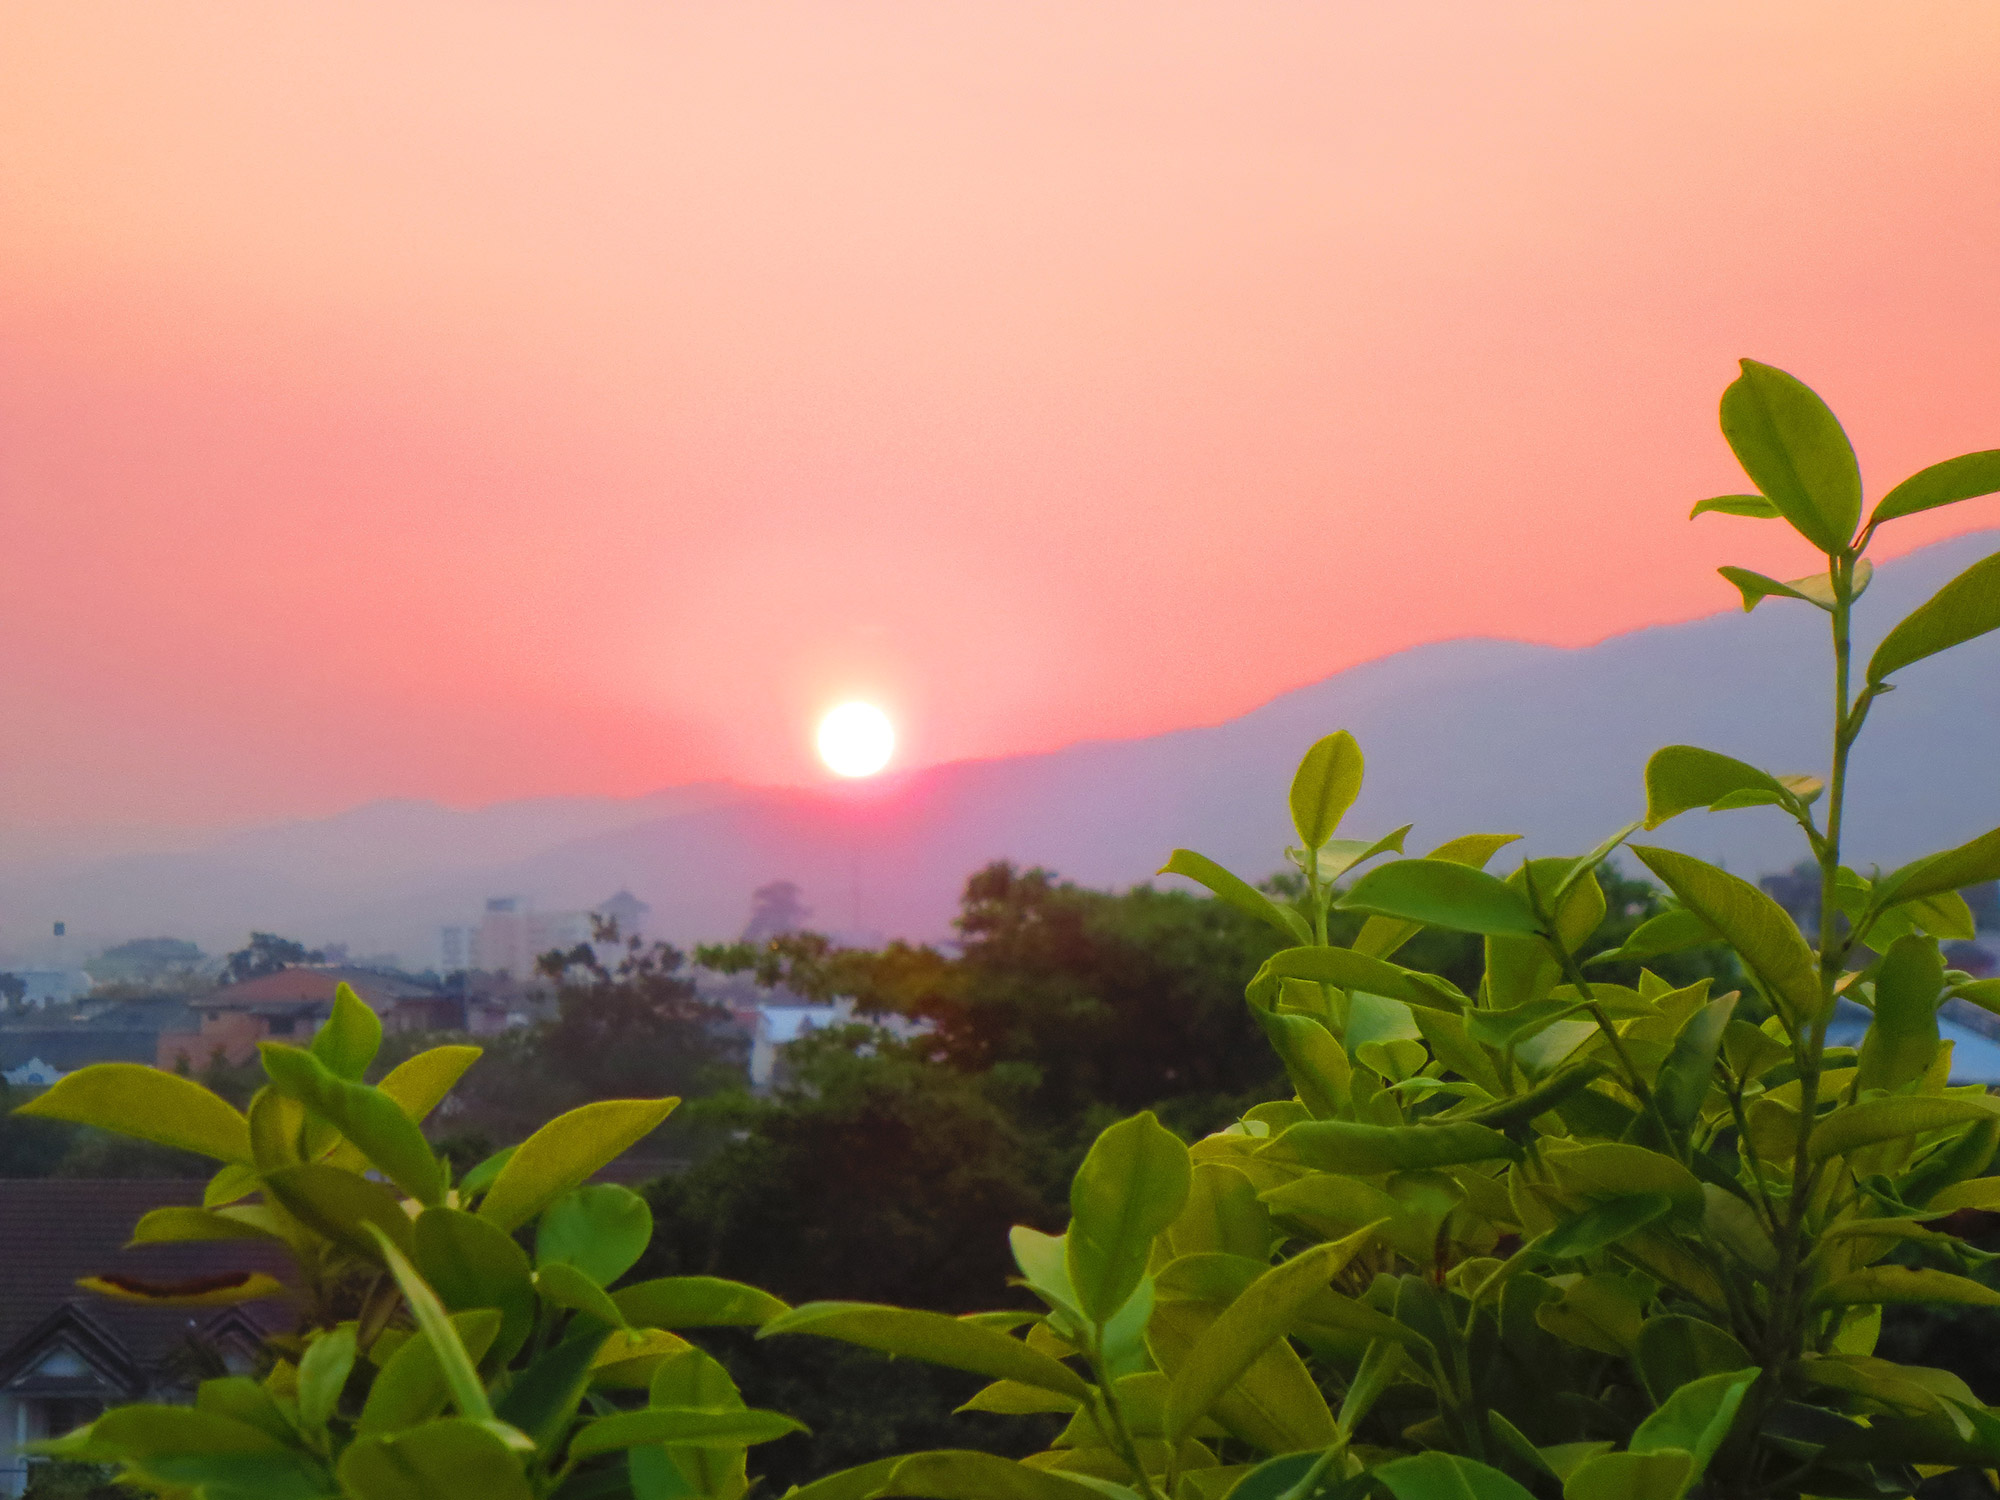 Sunset over Chiang Mai, Thailand